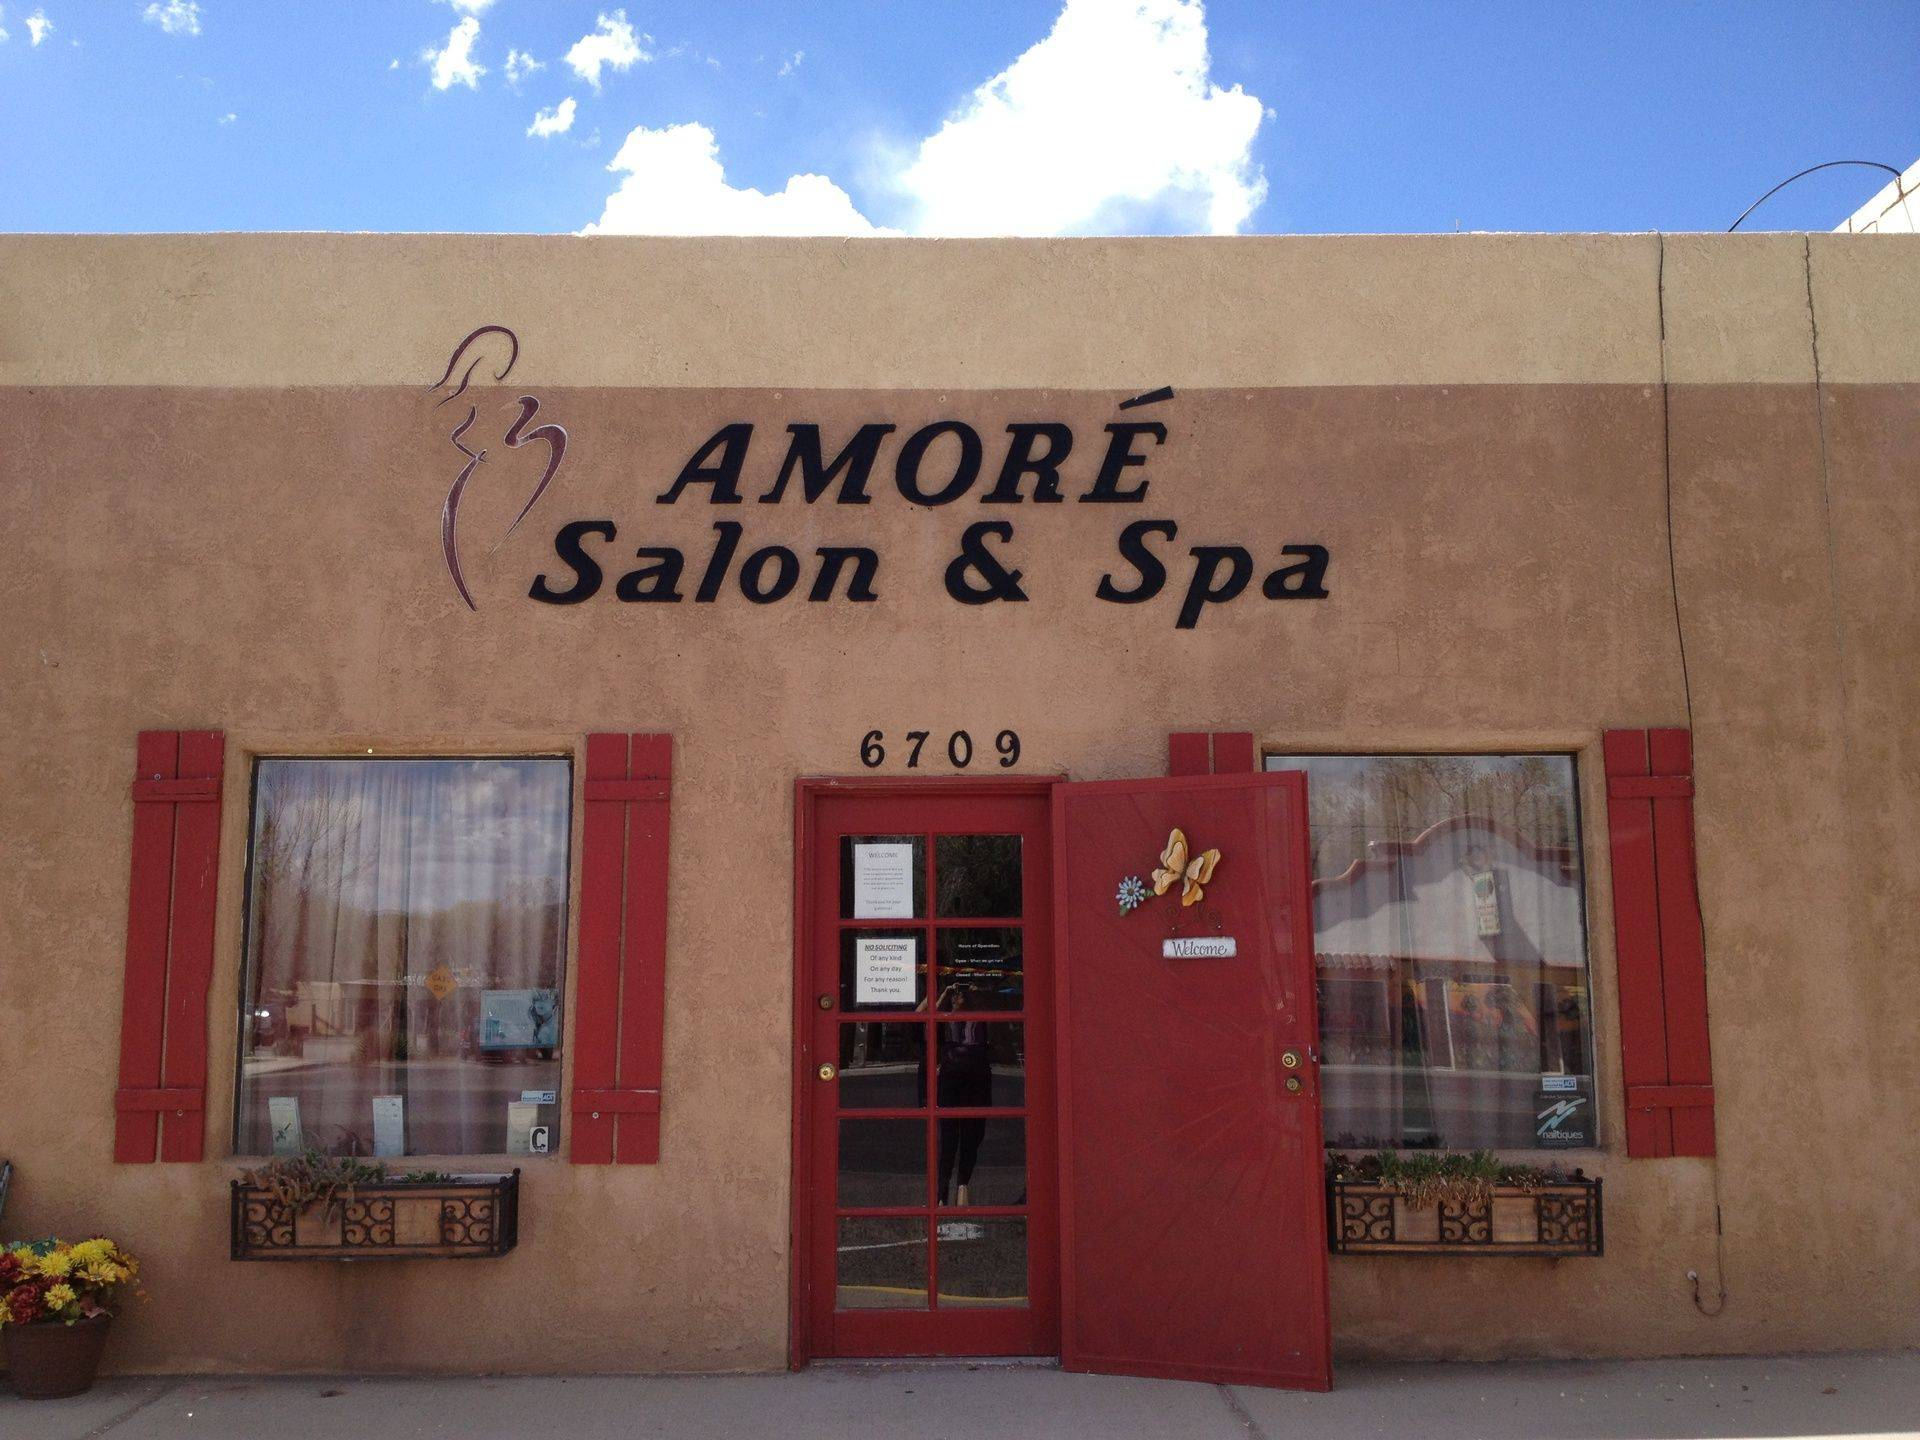 amore salon and spa - temp.jpg